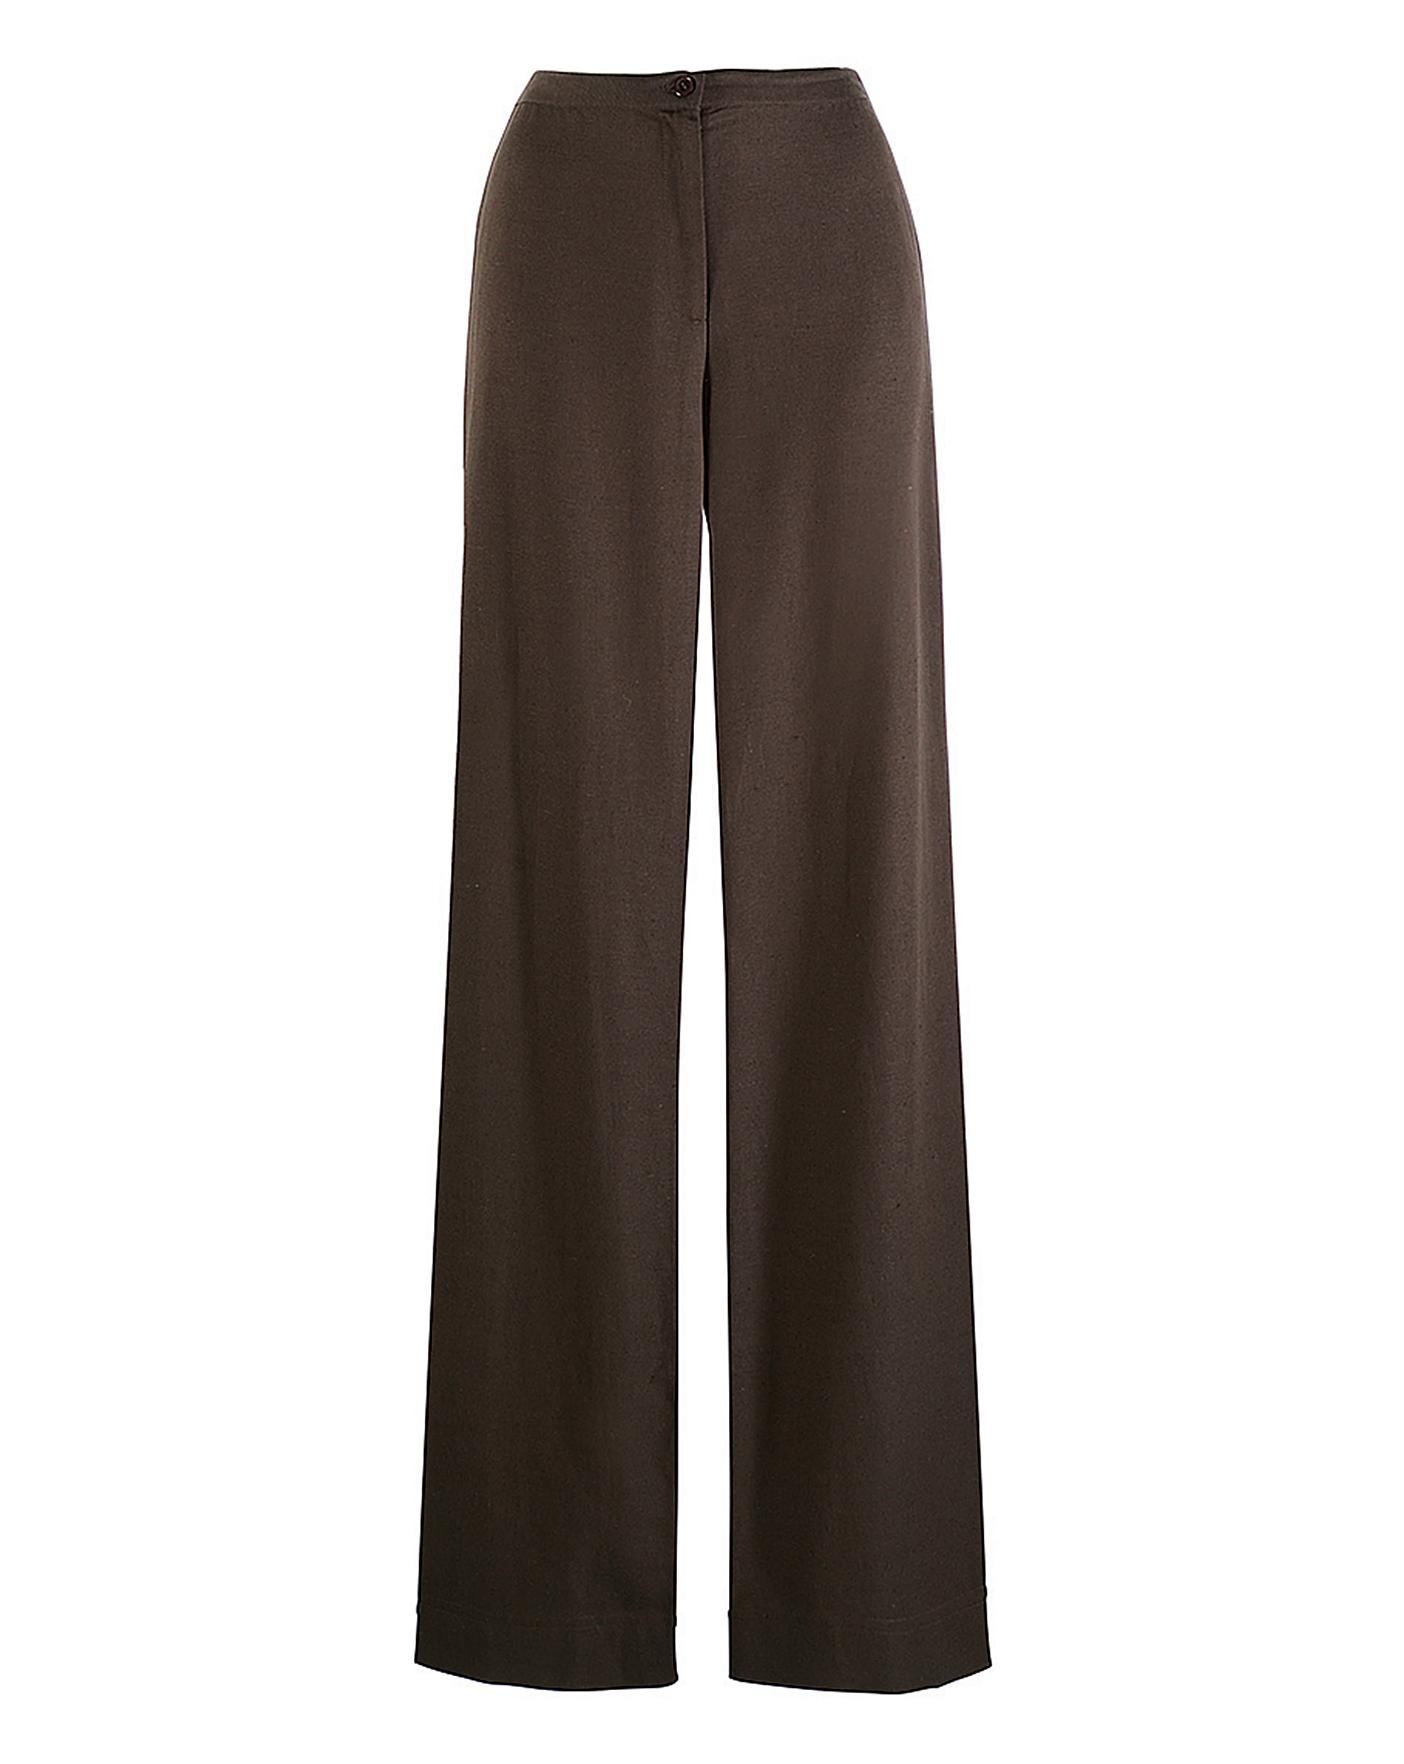 Petite Joanna Hope Trousers 25in Crazy Clearance